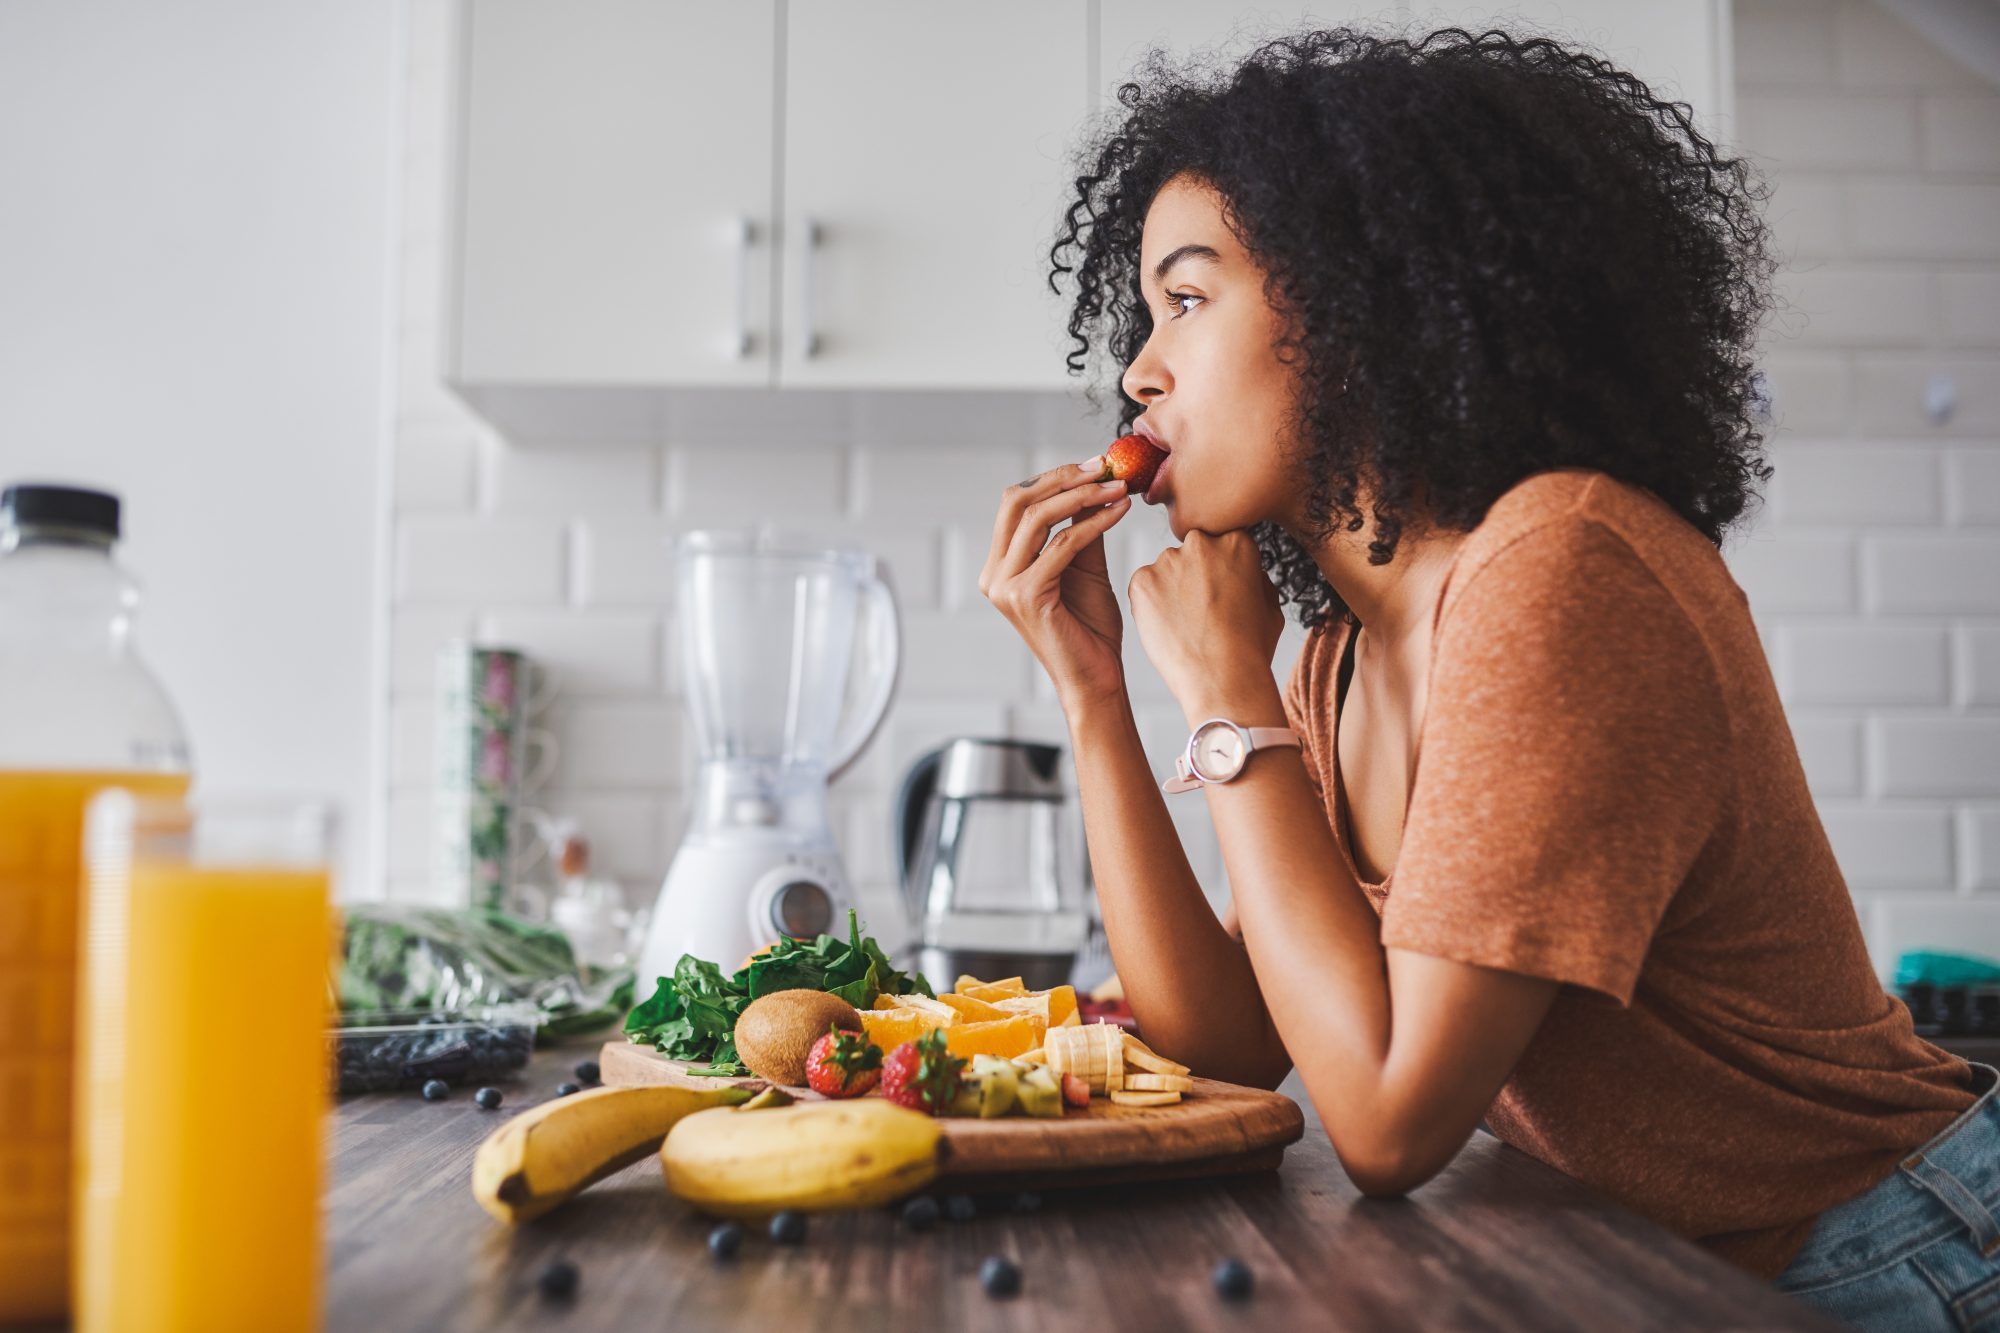 How To Lose Weight With Intermittent Fasting And The Ketogenic Diet?